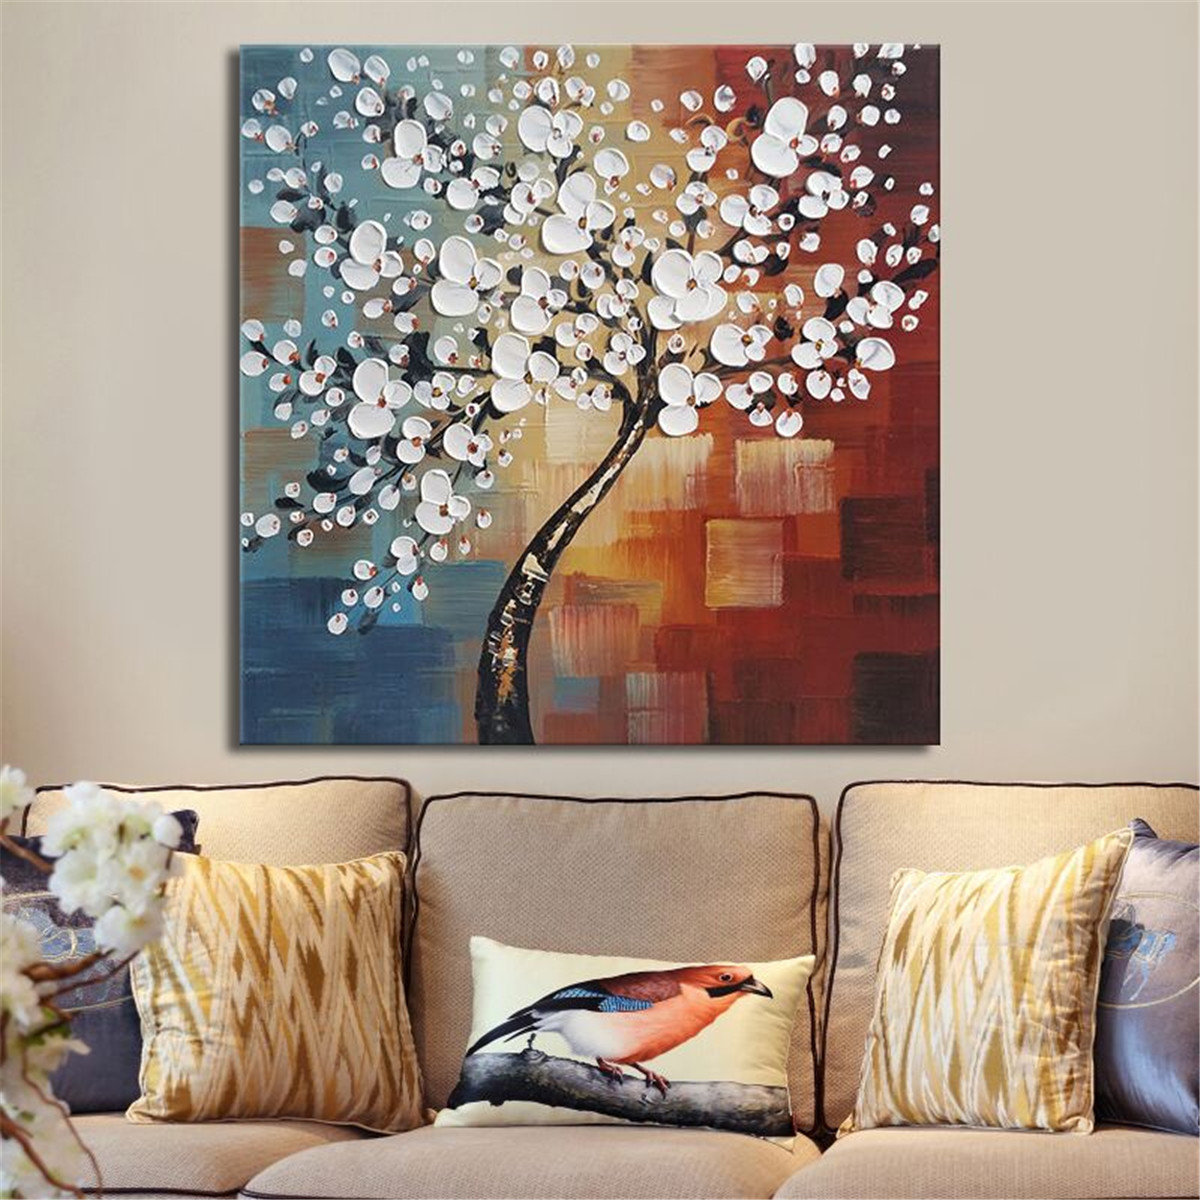 Framed Hand Paint Canvas Painting Home Decor Wall Art Abstract Flower Tree Decoration